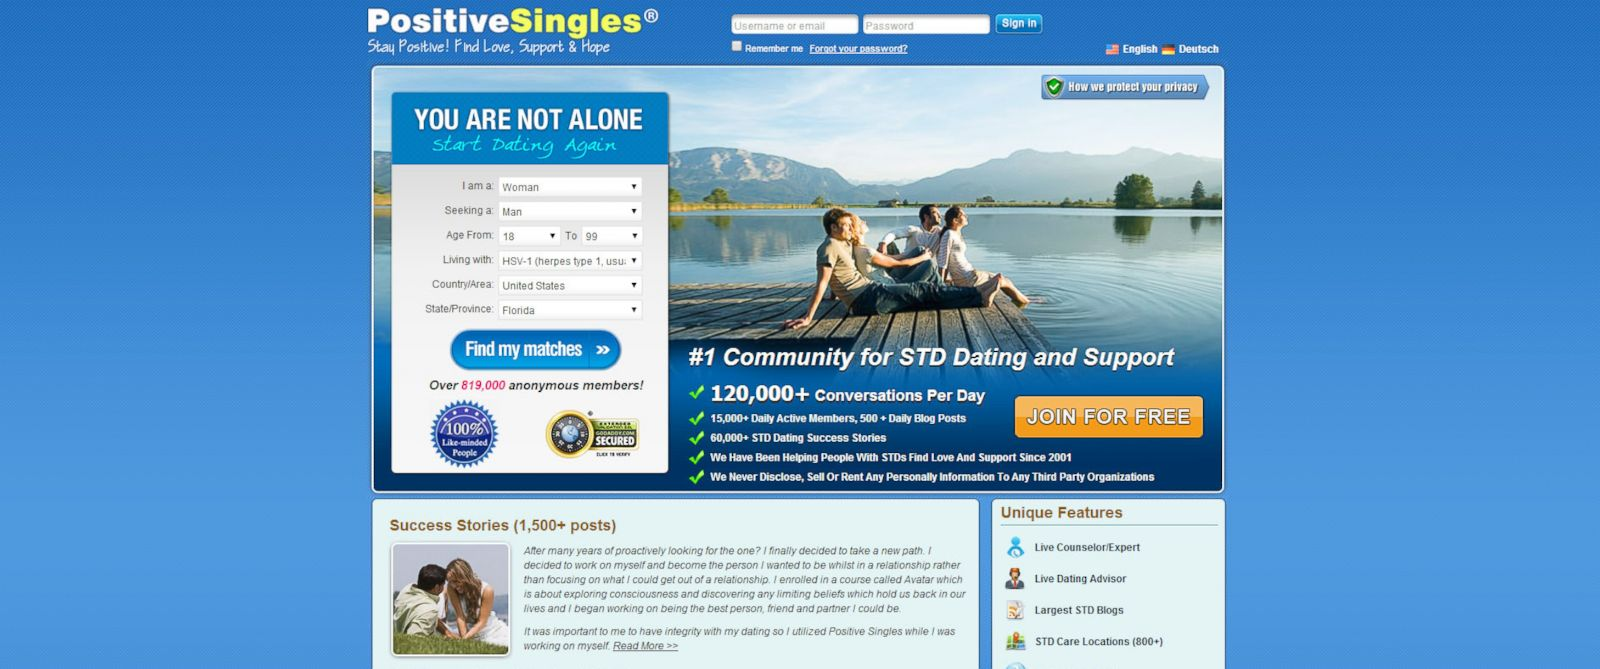 PHOTO: PositiveSingles.com was founded in 2001 to help people with STDs get back into the dating world.